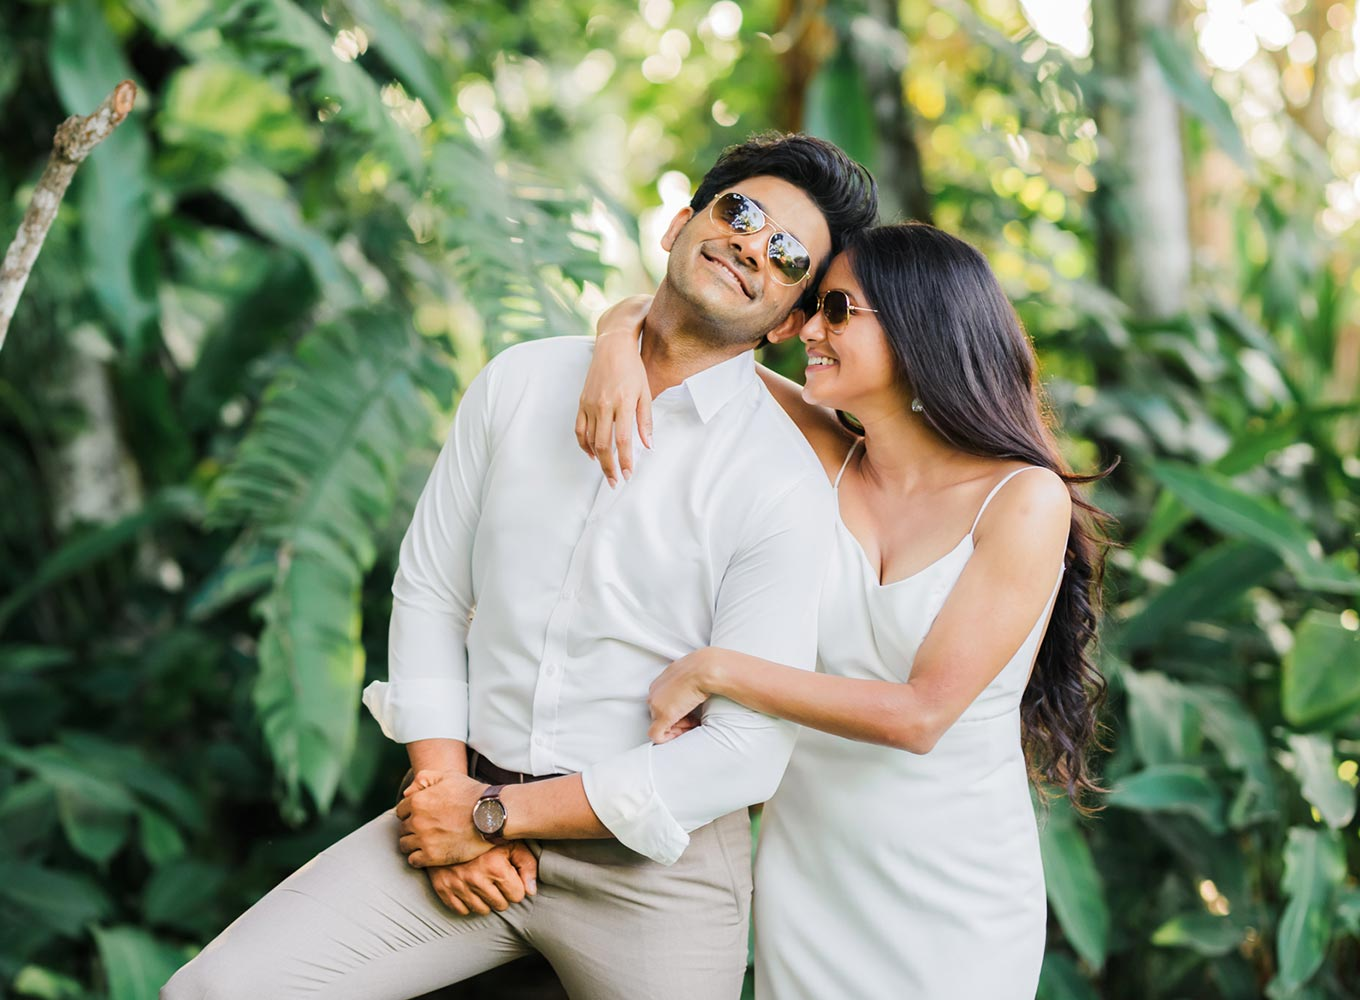 2021 in lankan womens best sri dating Investment Opportunities